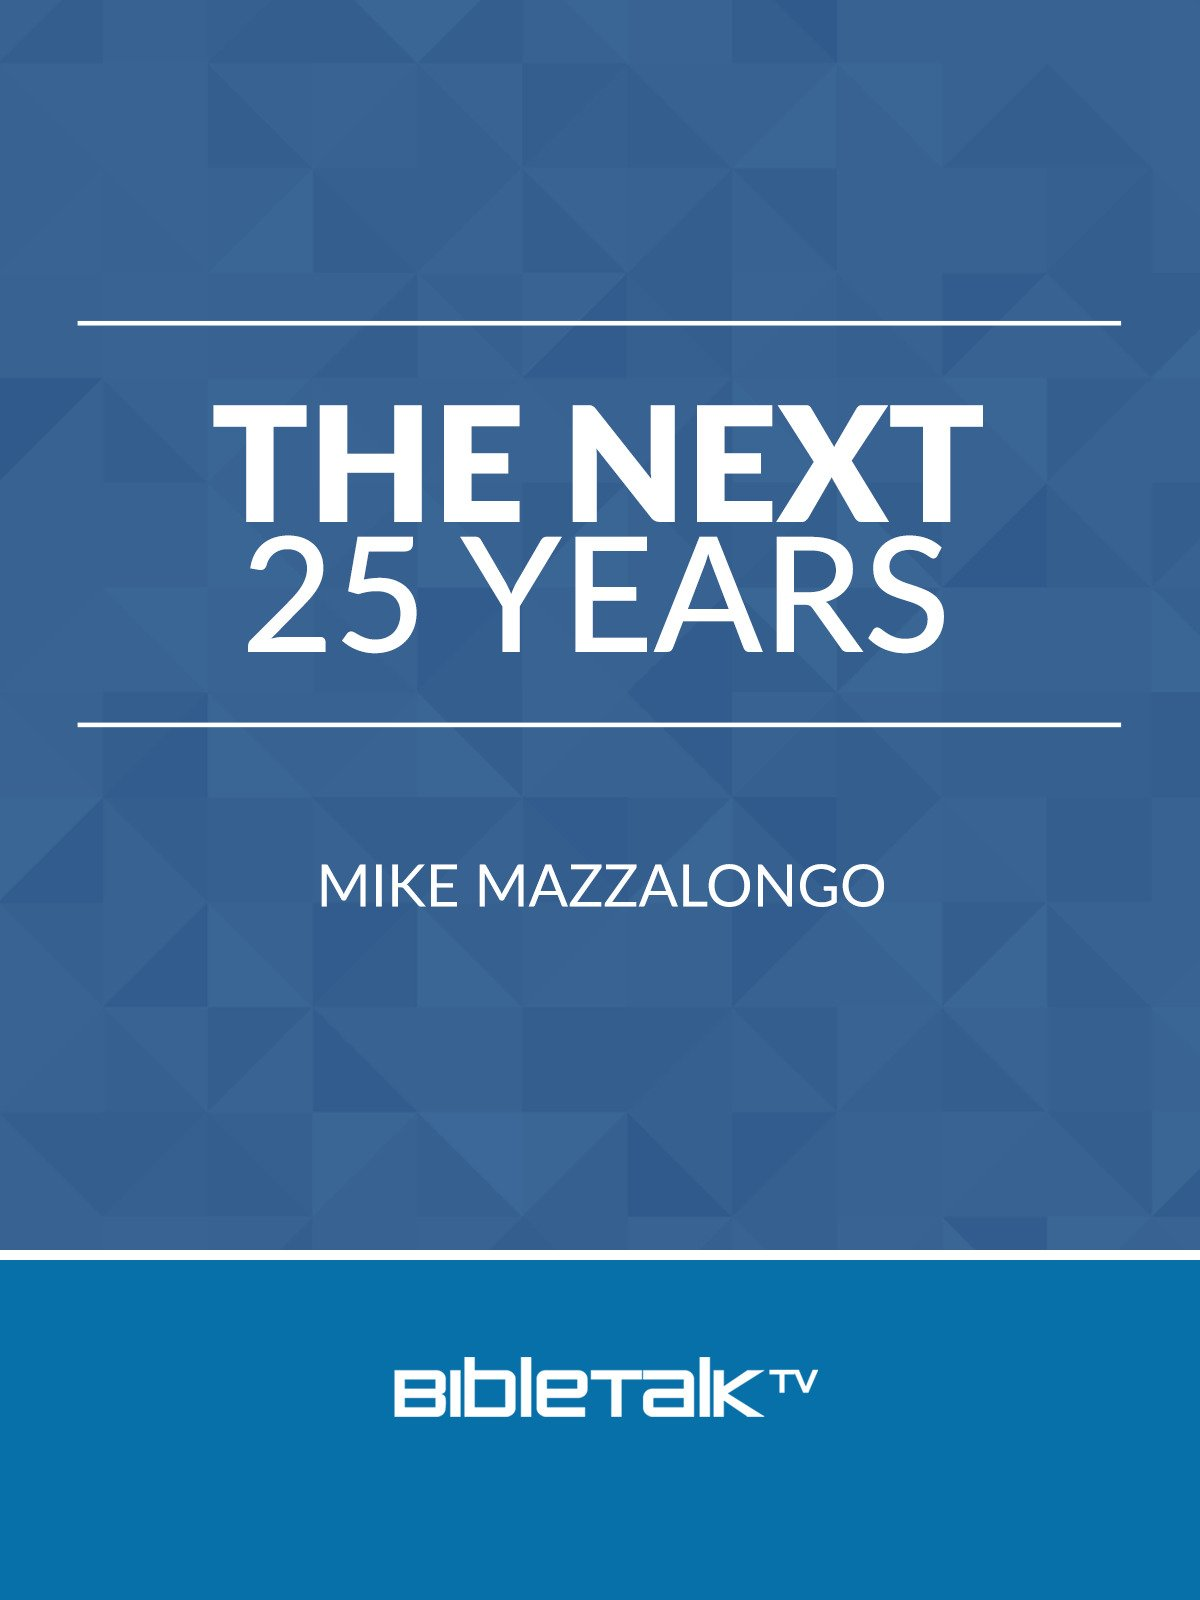 The Next 25 Years